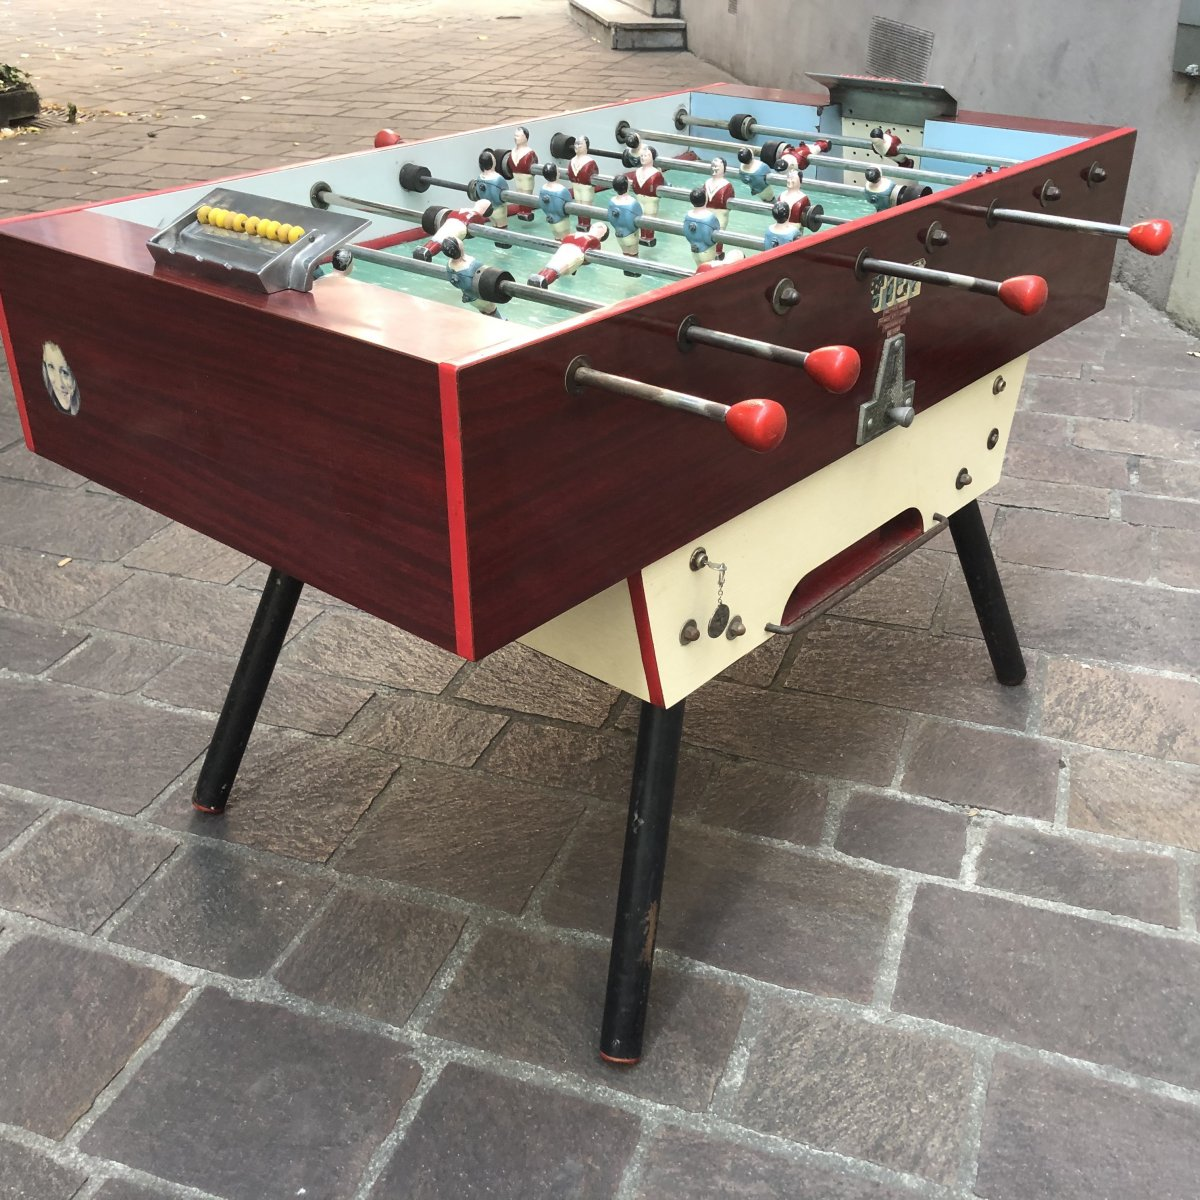 Rare Baby Foot Retro By Bar Design 1960 In Very Good Condition Of Use Bistro Game